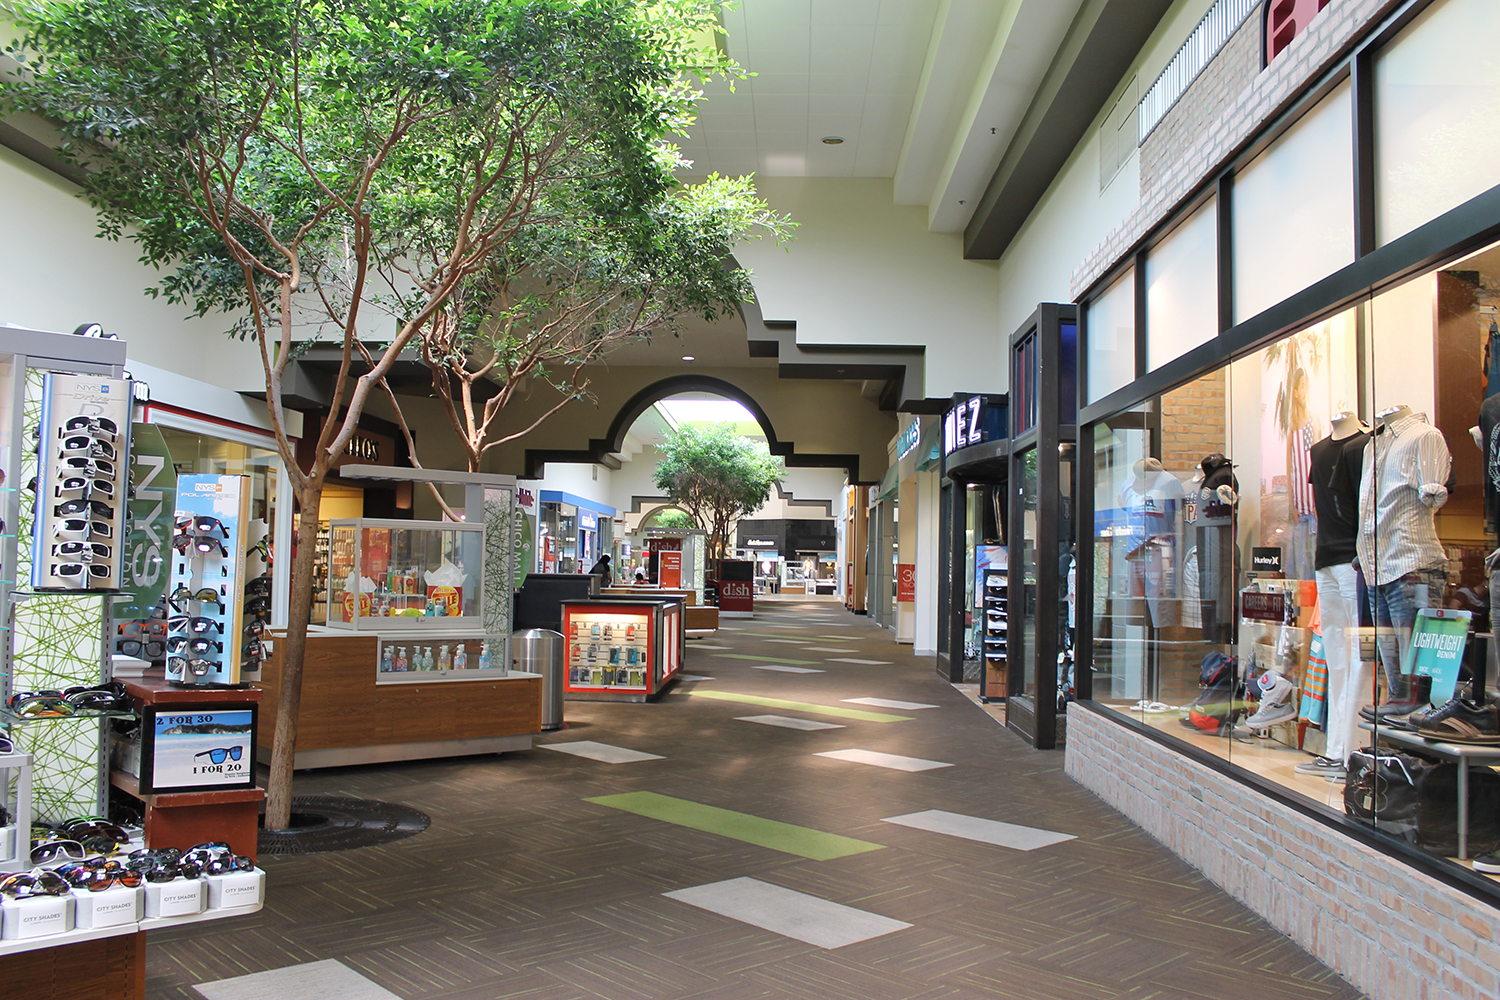 Chico Mall, anchored by JC Penney, Sears, and Dick's, was recently updated